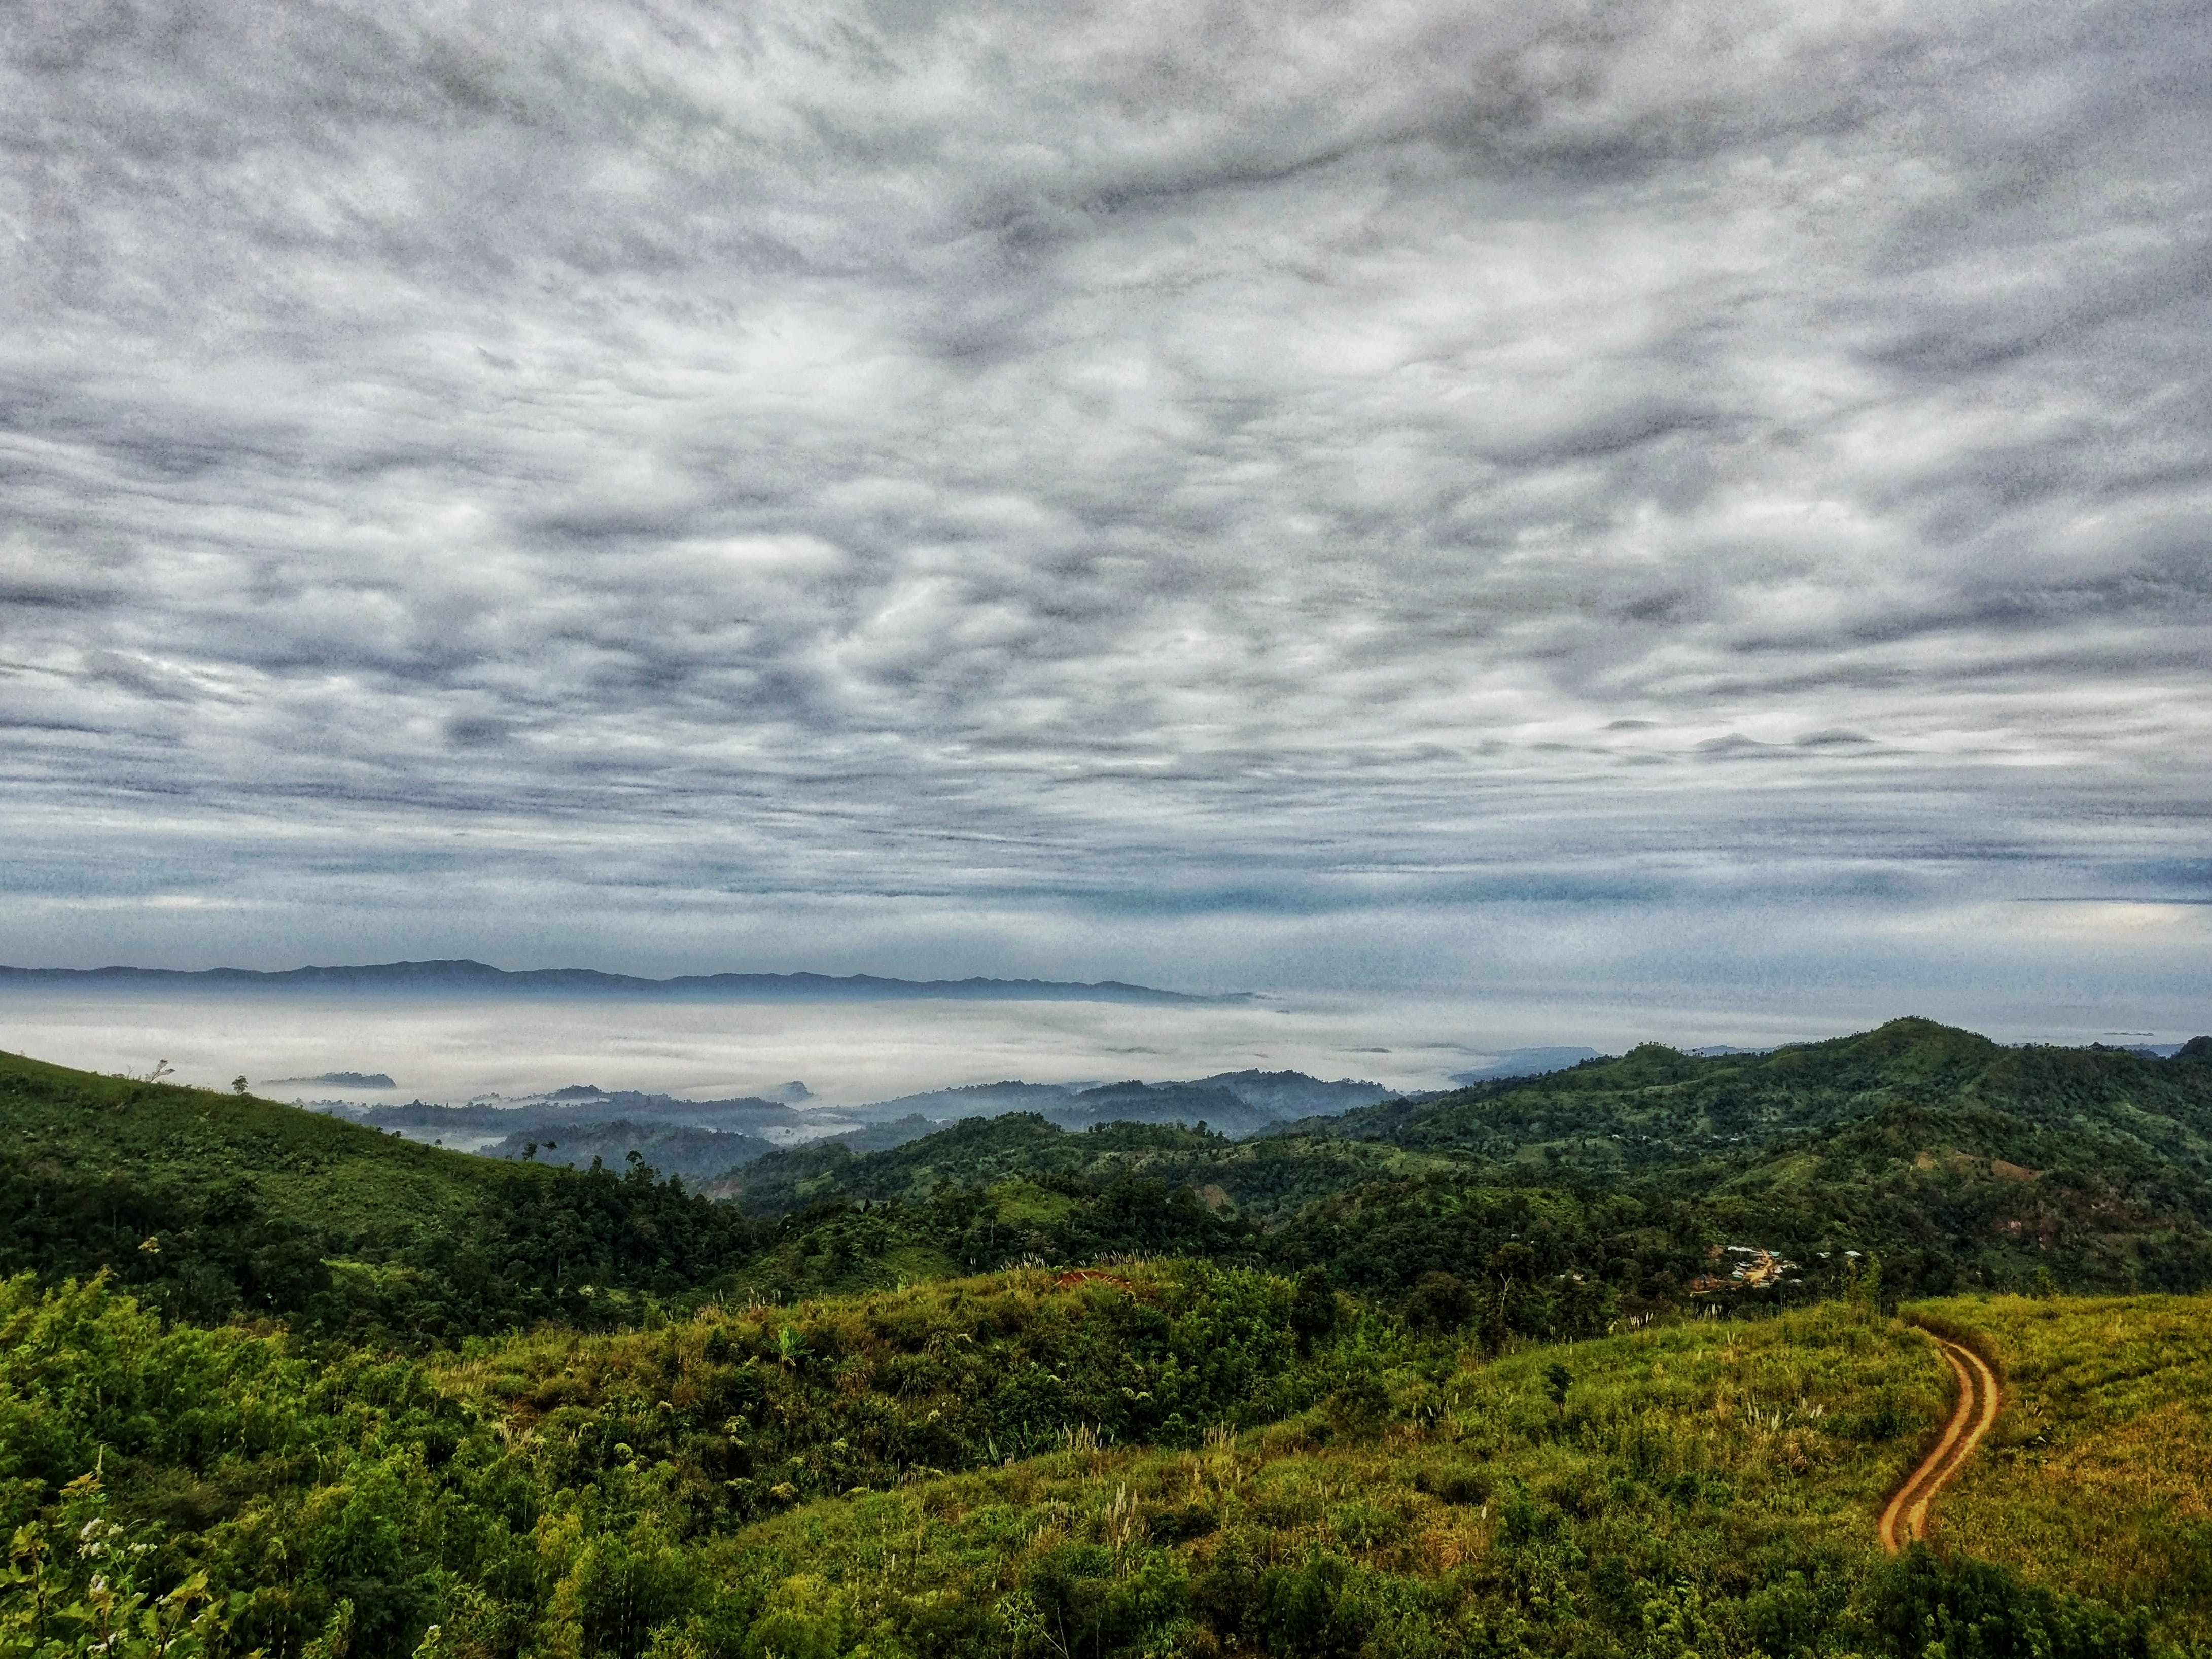 Free stock photo of beauty in nature, clouds, grey sky, hills